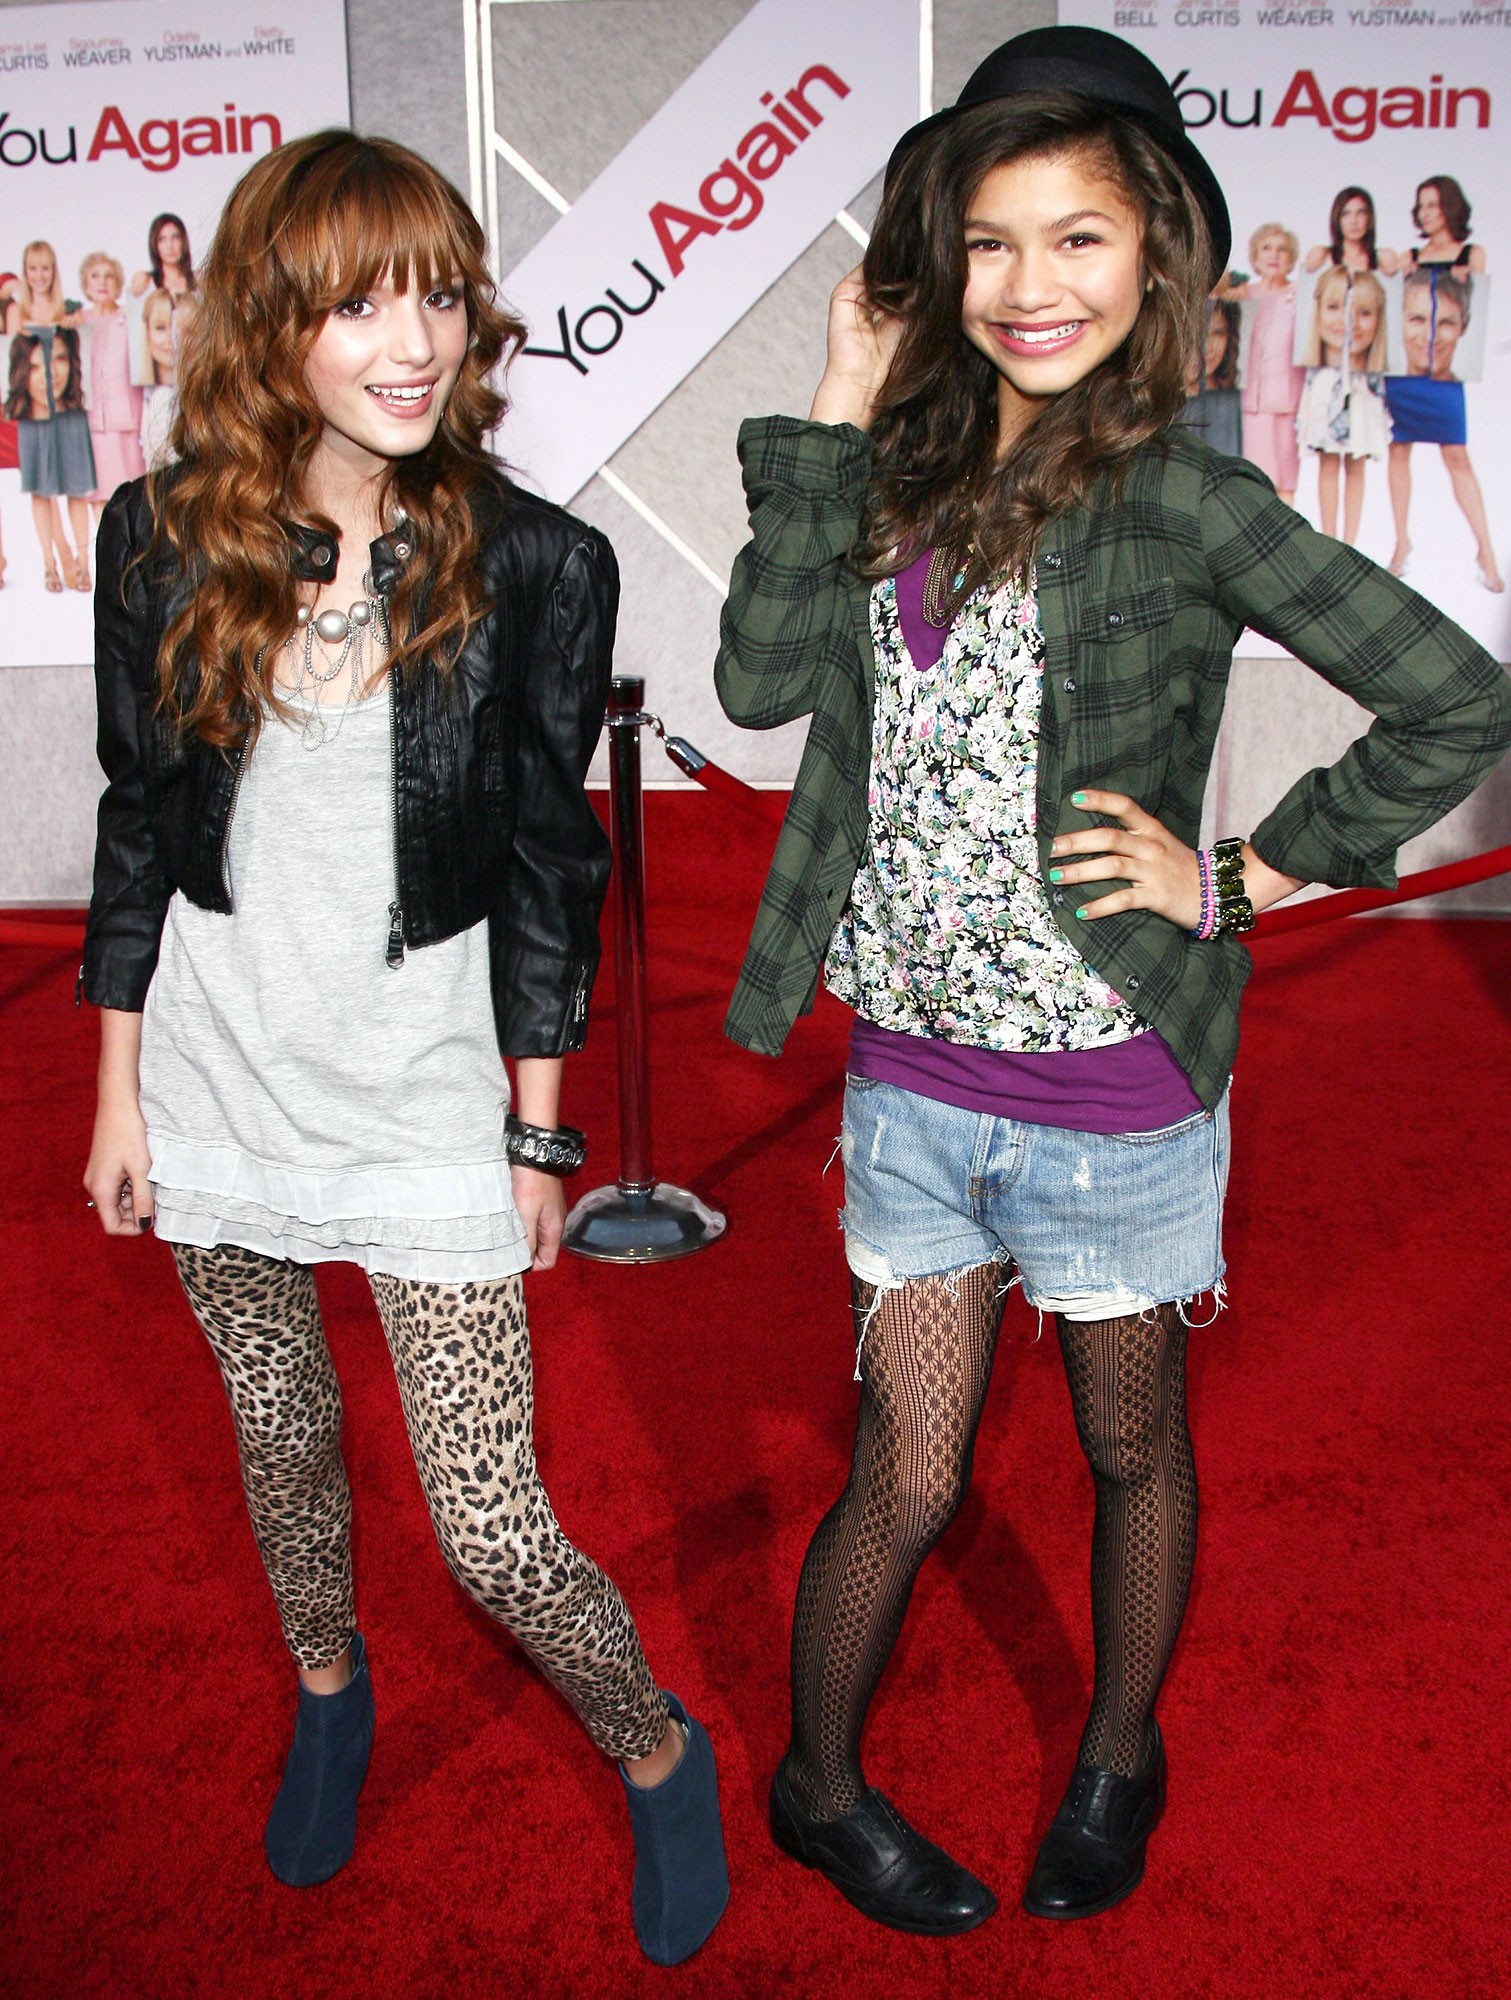 Bella Thorne and Zendaya Coleman in 2010 Bella Thorne Reflects on Being Pitted Against Shake It Up Costar Zendaya and Said They We Were Not Friends at First